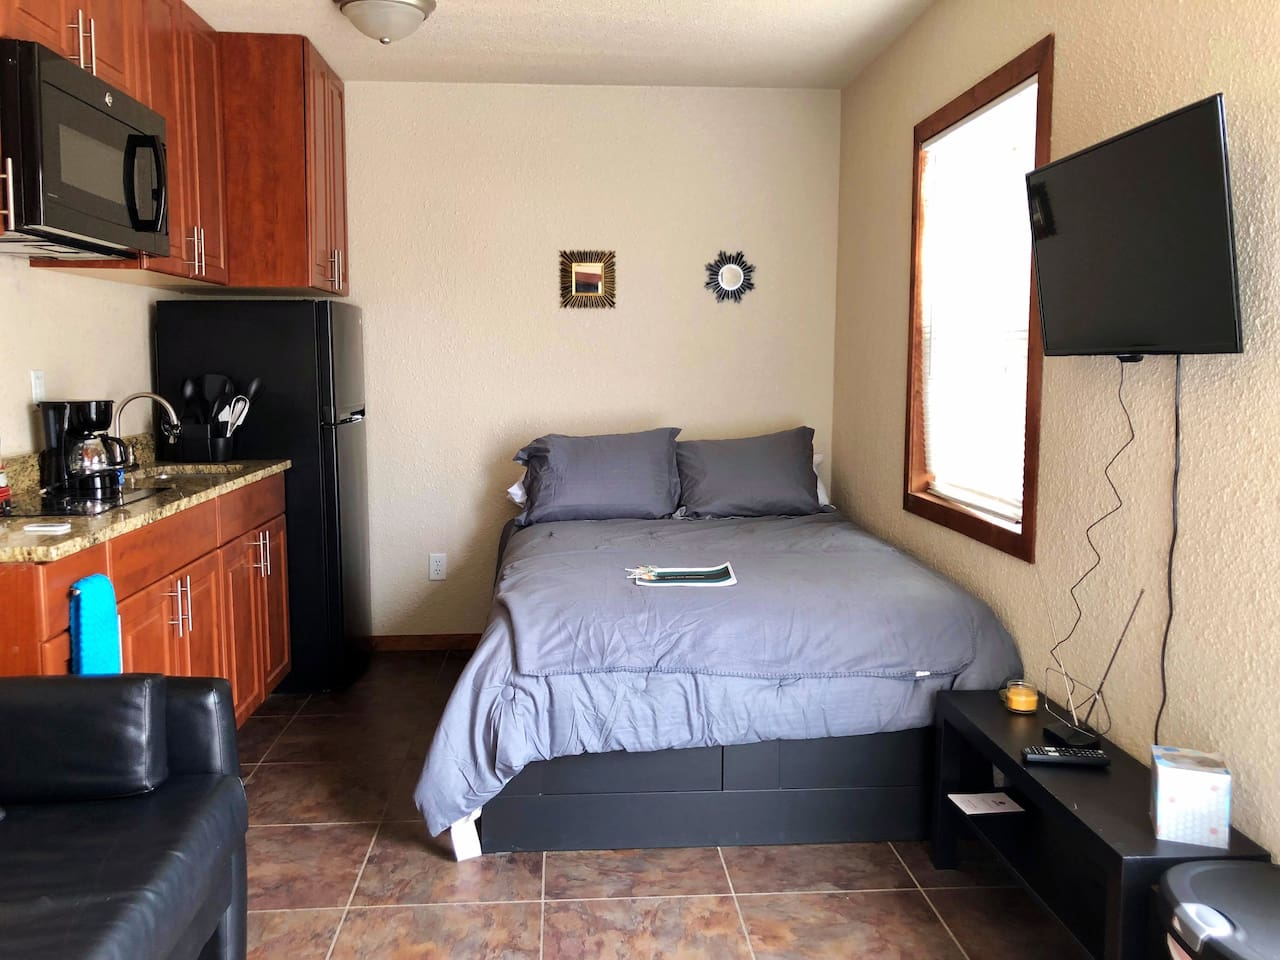 Small living room area with TV (antenna). Microwave, coffee maker, full size fridge. Futon couch and full size bed. Full bathroom.